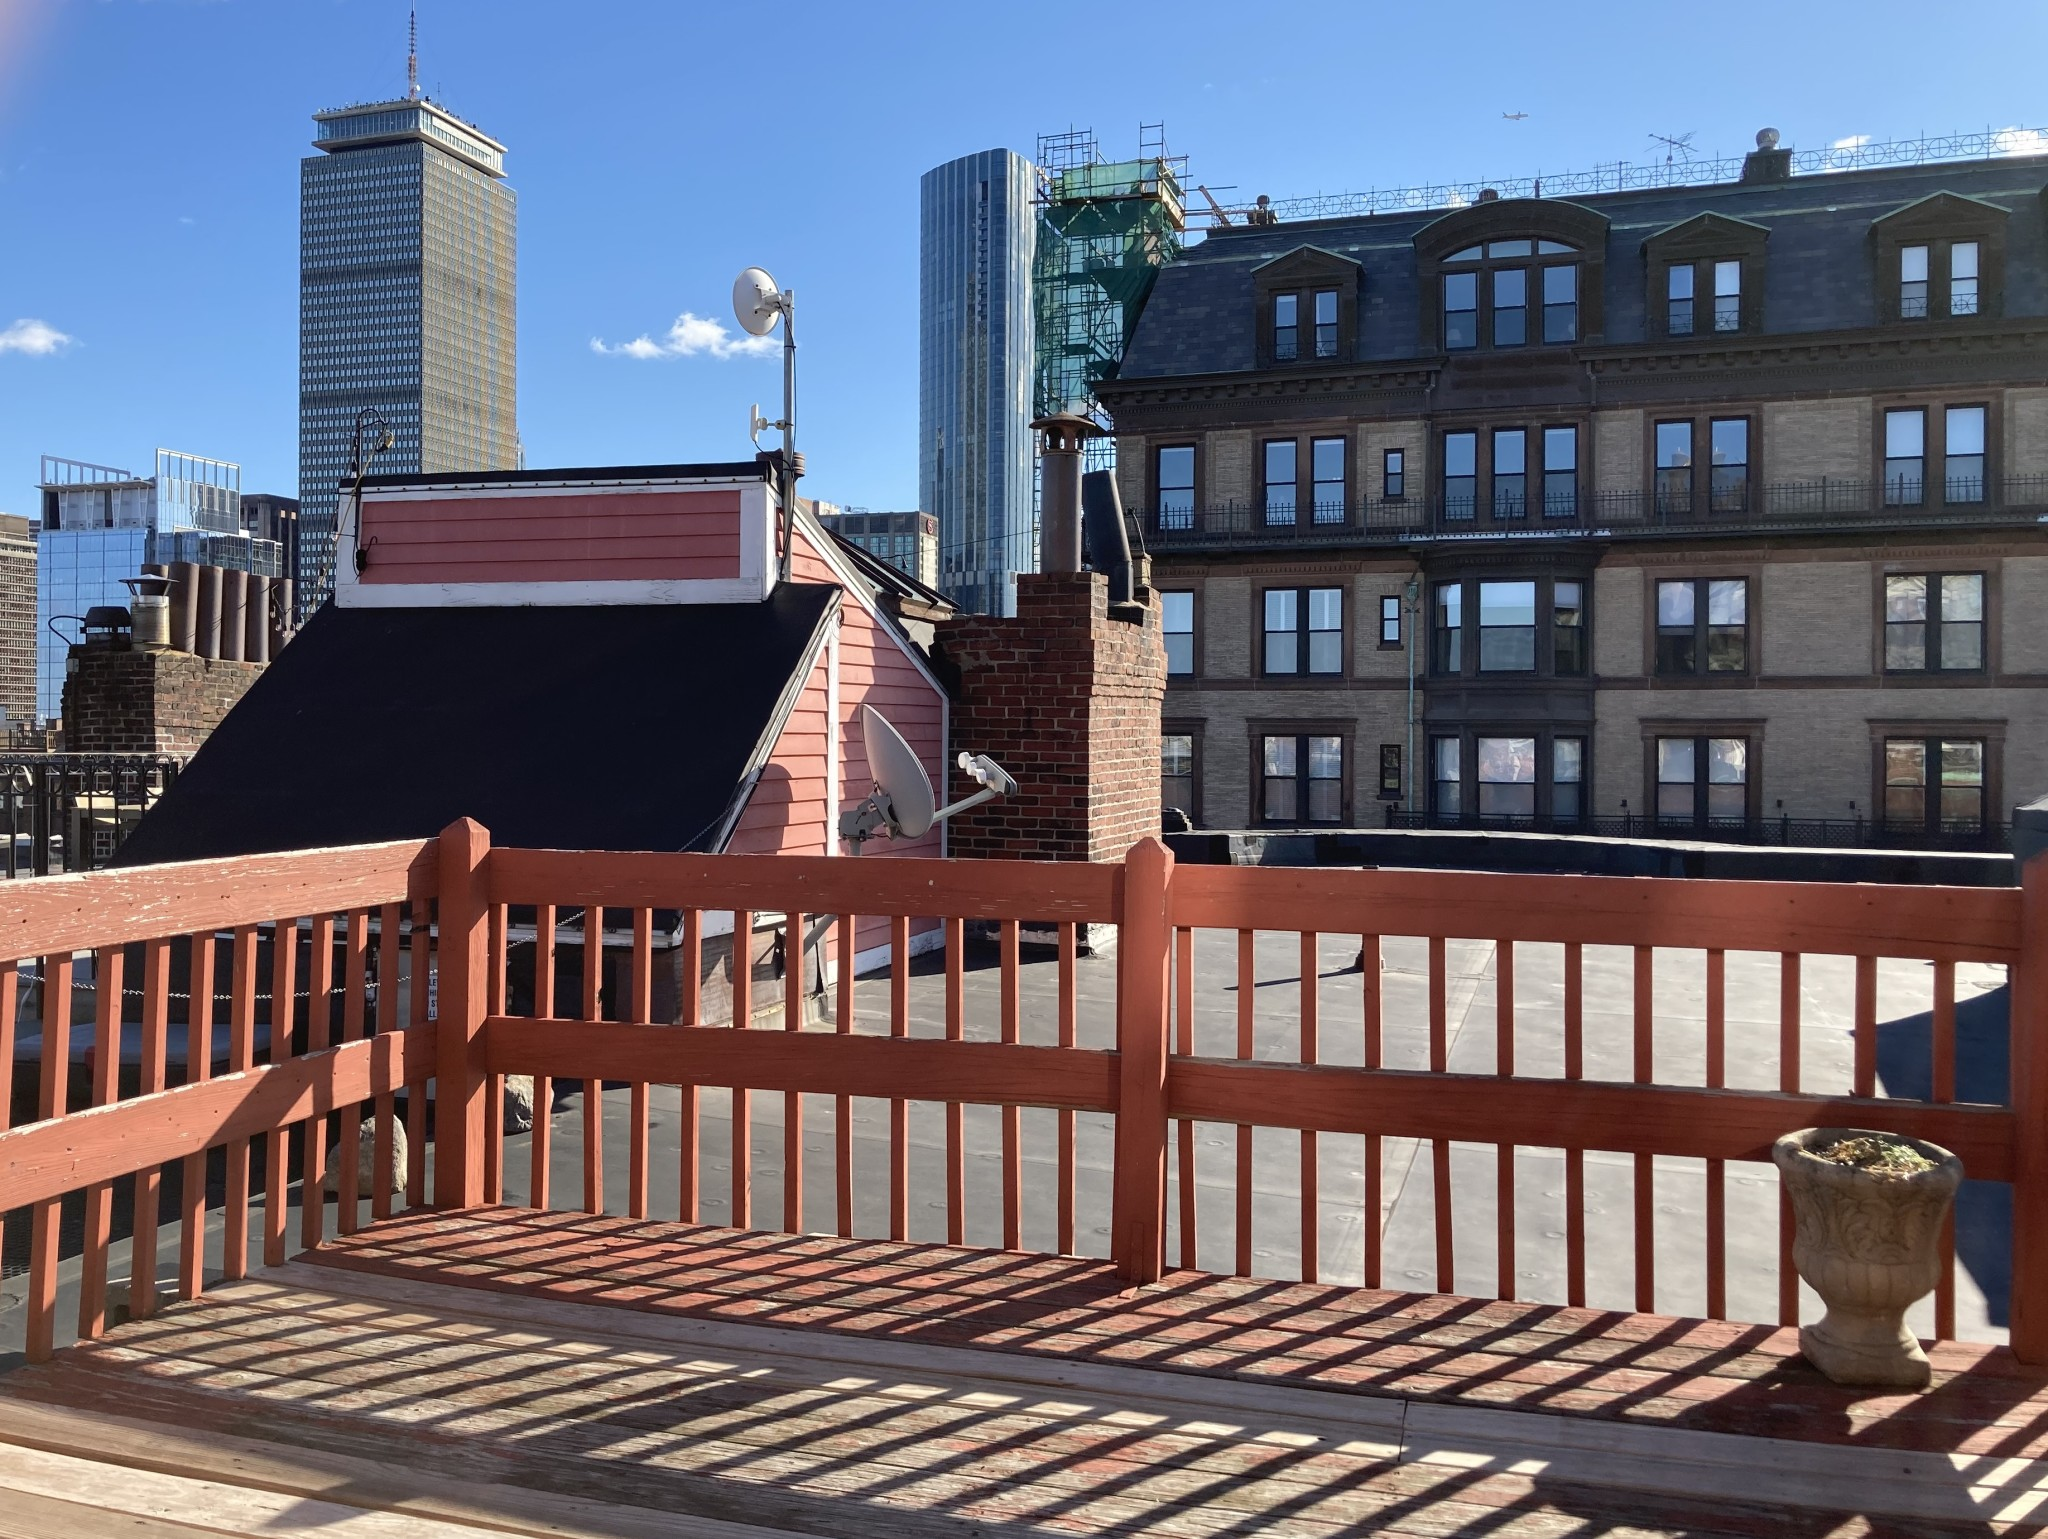 PRIVATE ROOF DECK INCLUDED with this Amazing 2 Bed 1 Bath Apartment!!